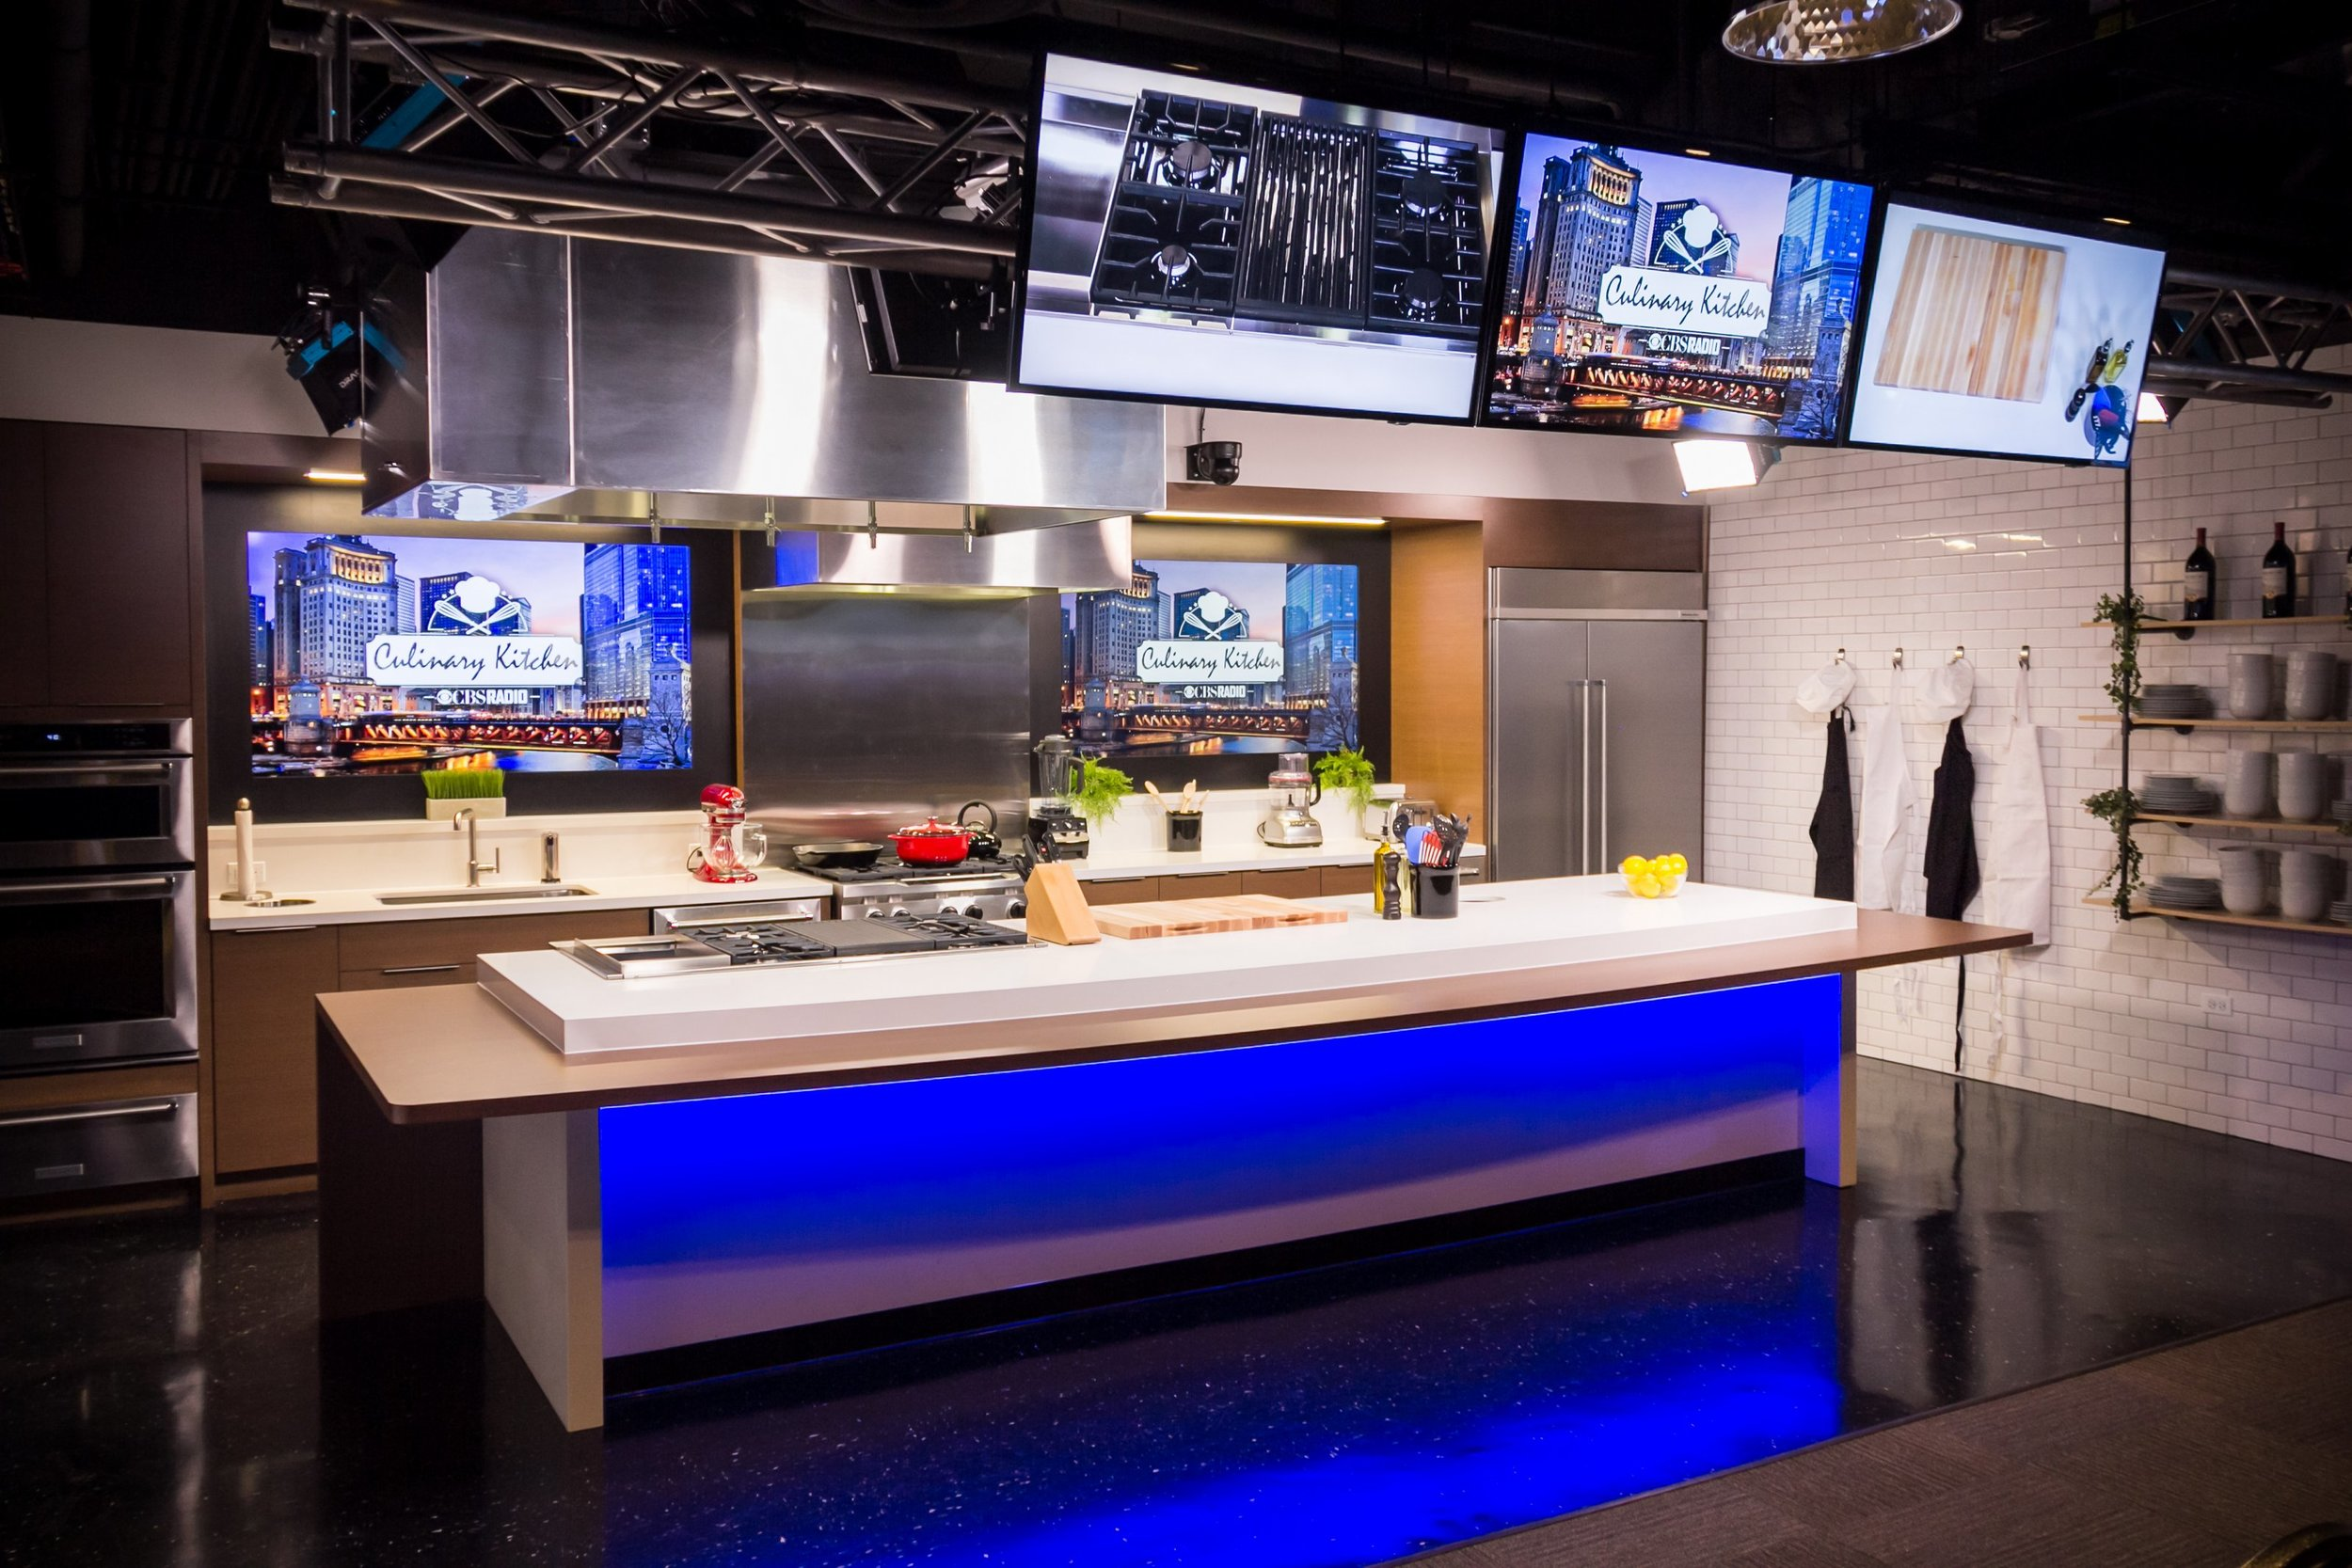 CBS Culinary Kitchen Studio